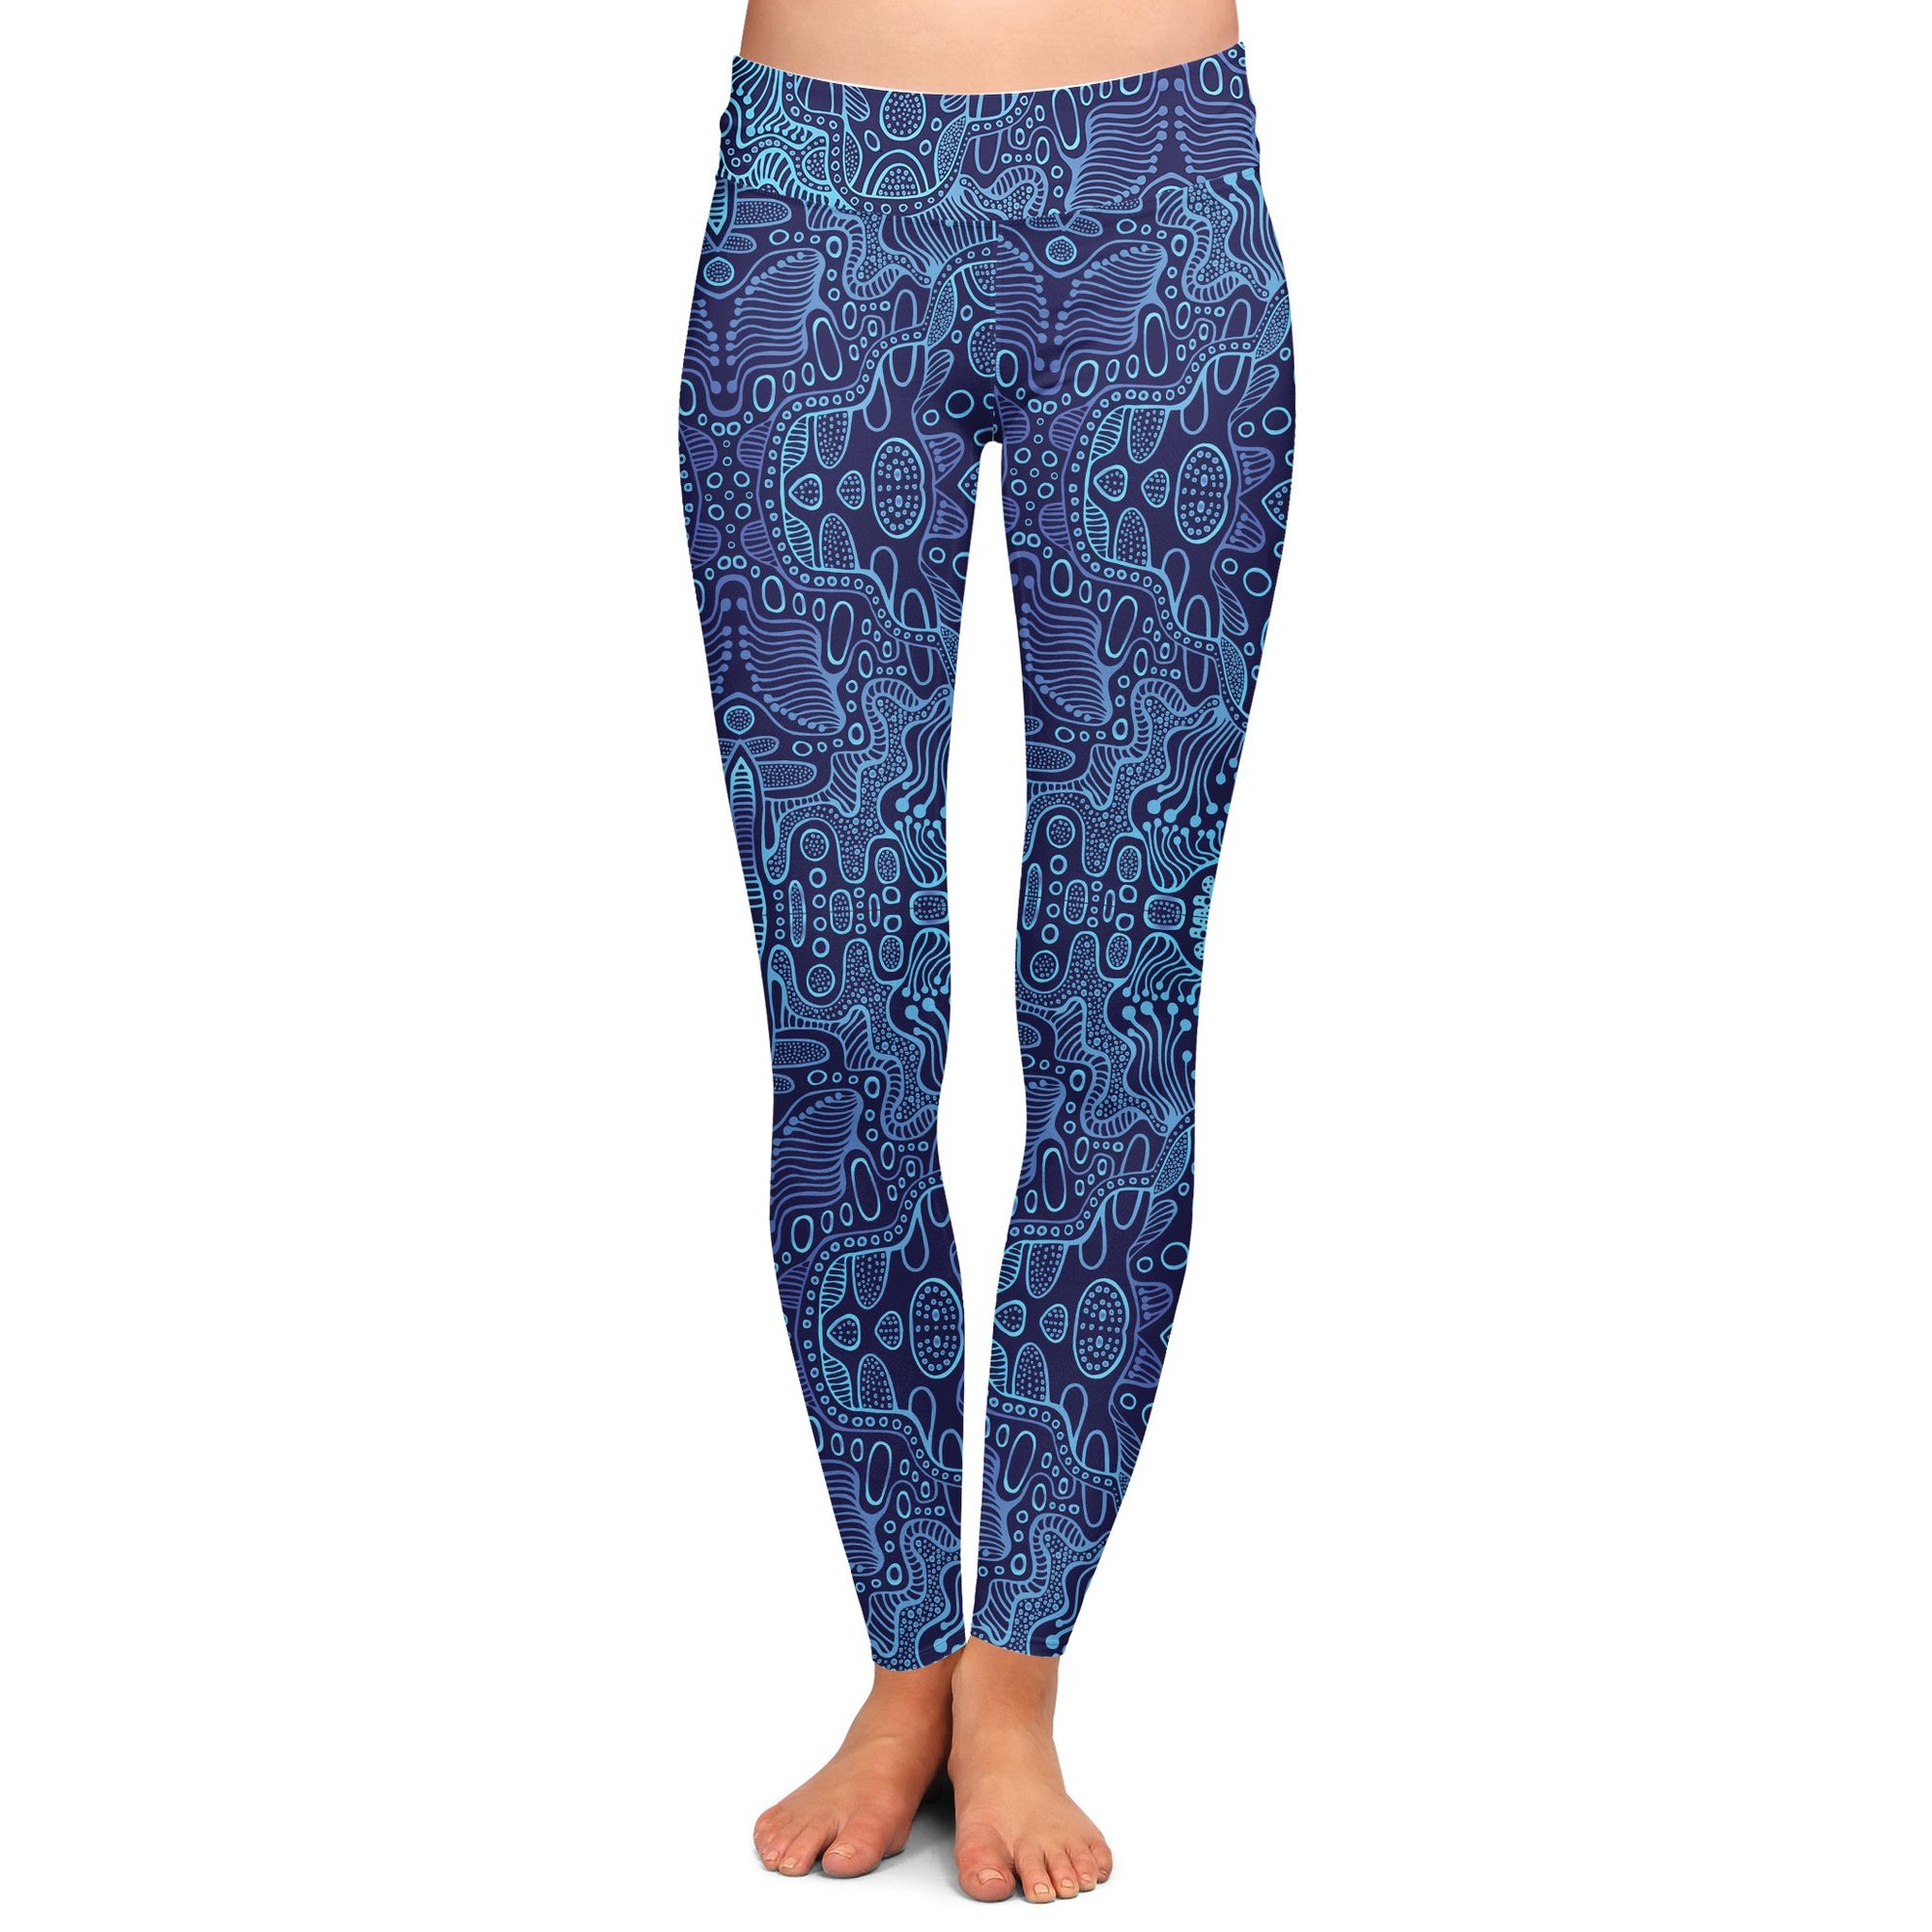 Blue Yonder Yoga Pants | Fabrifaction.com